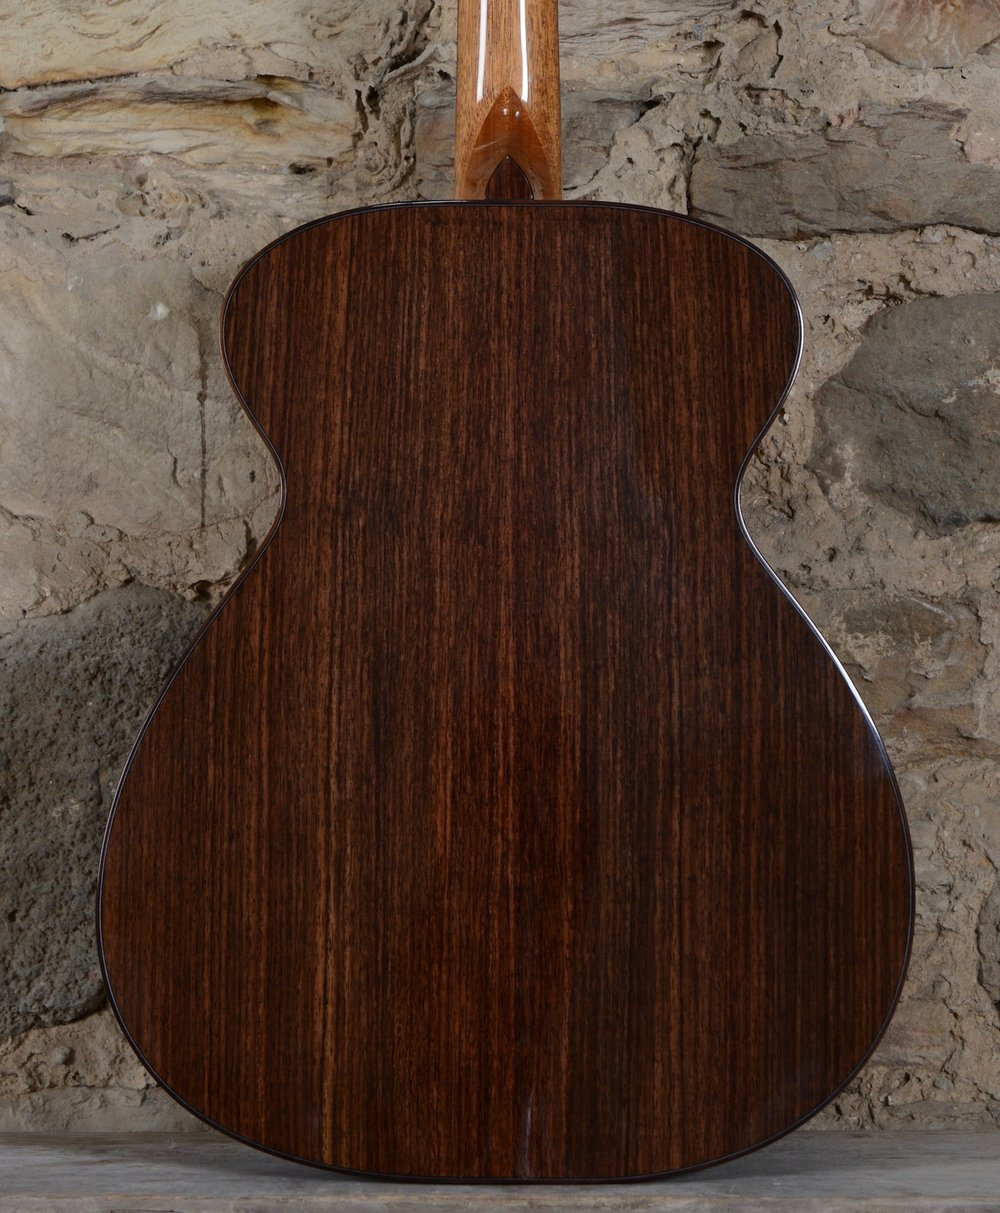 Oreval with Indian Rosewood